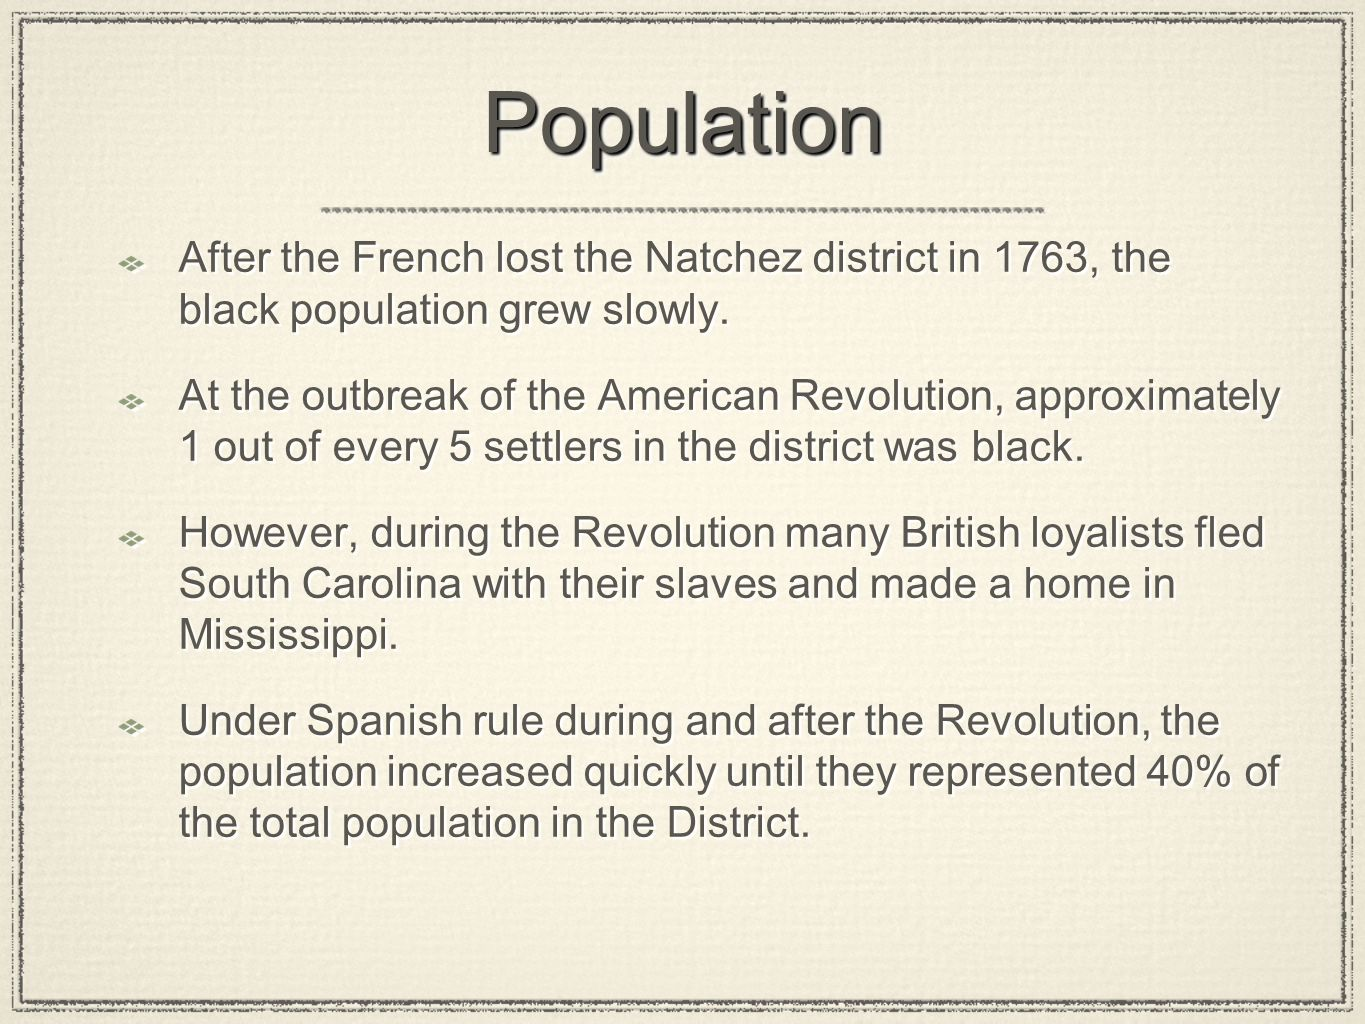 Population After the French lost the Natchez district in 1763, the black population grew slowly.